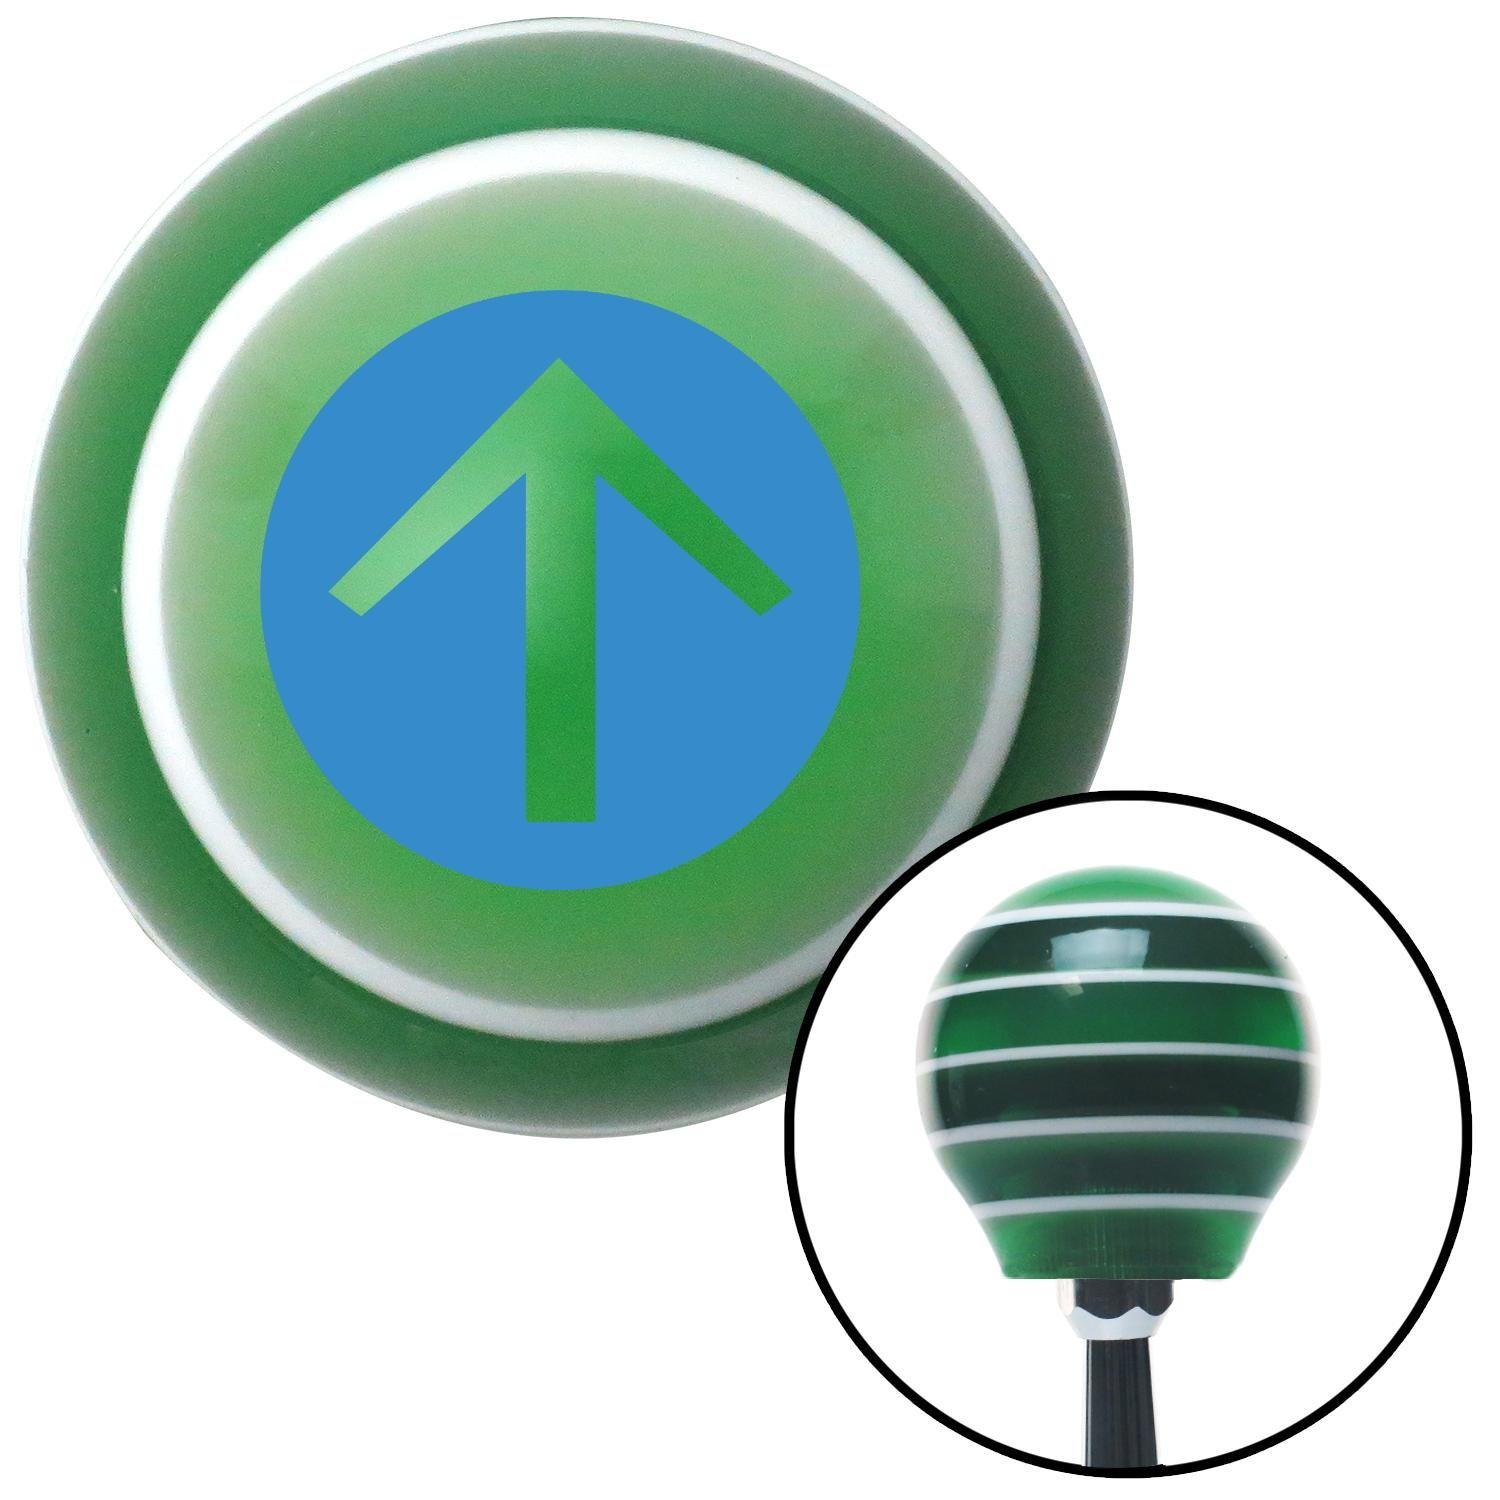 Blue Circle Directional Arrow Up American Shifter 121265 Green Stripe Shift Knob with M16 x 1.5 Insert